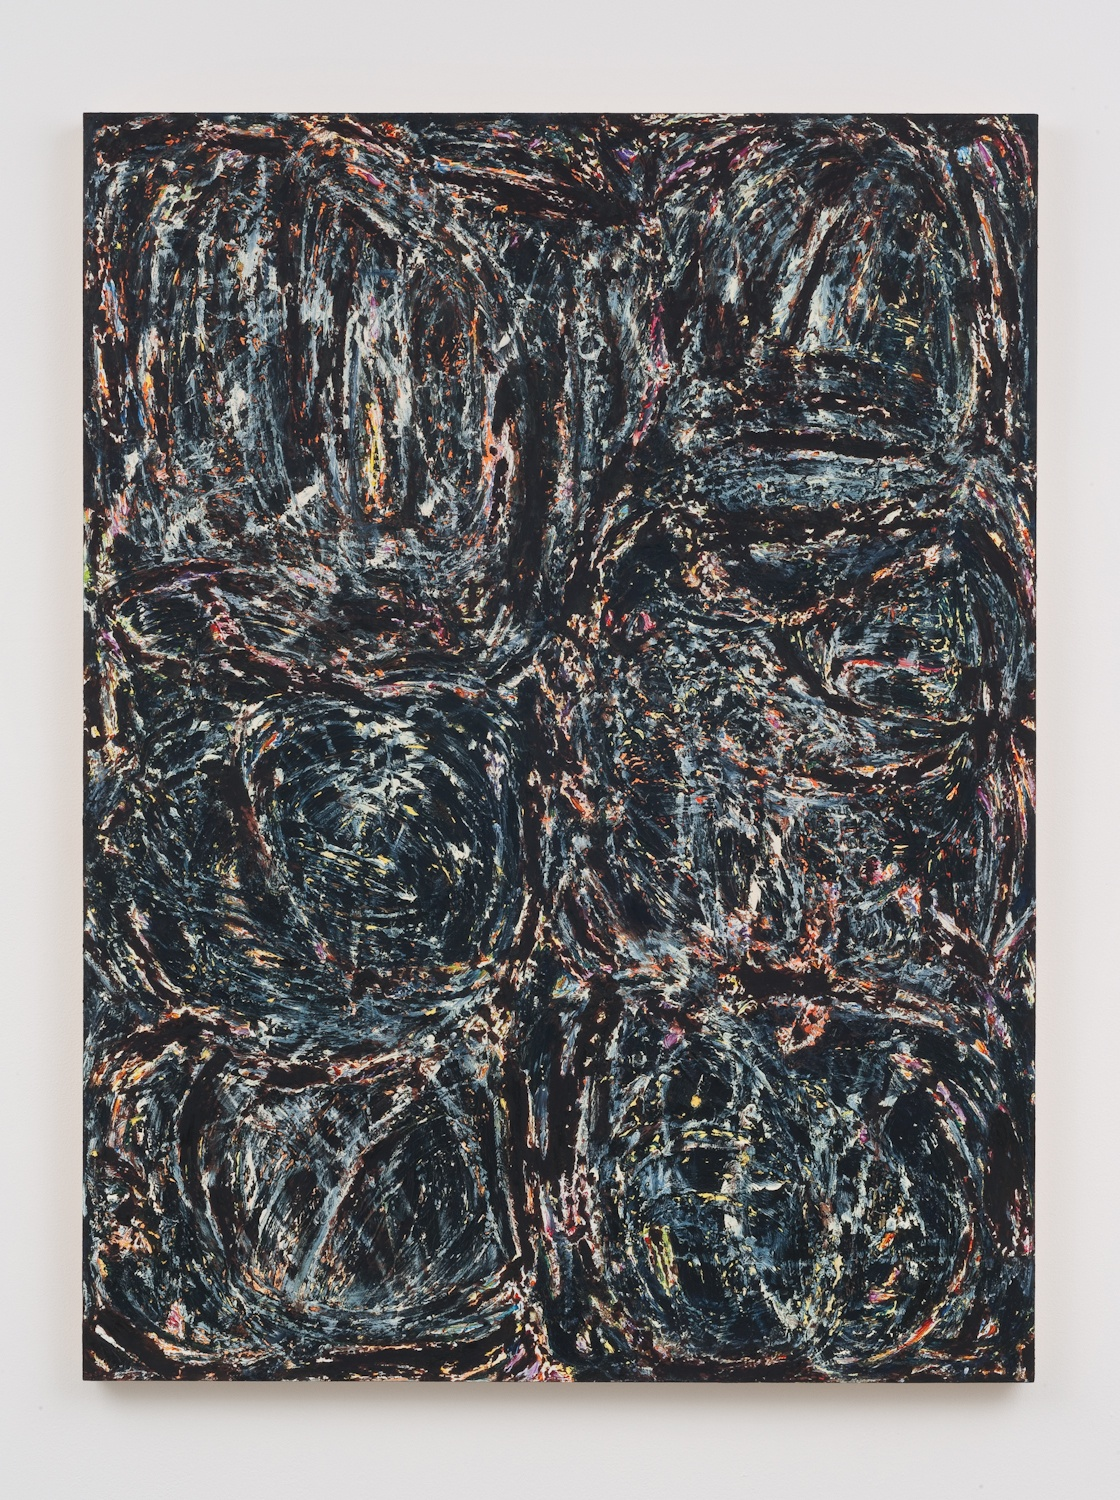 Greg Gong  Untitled  2014 Oil on panel 48h x 36w in GG002